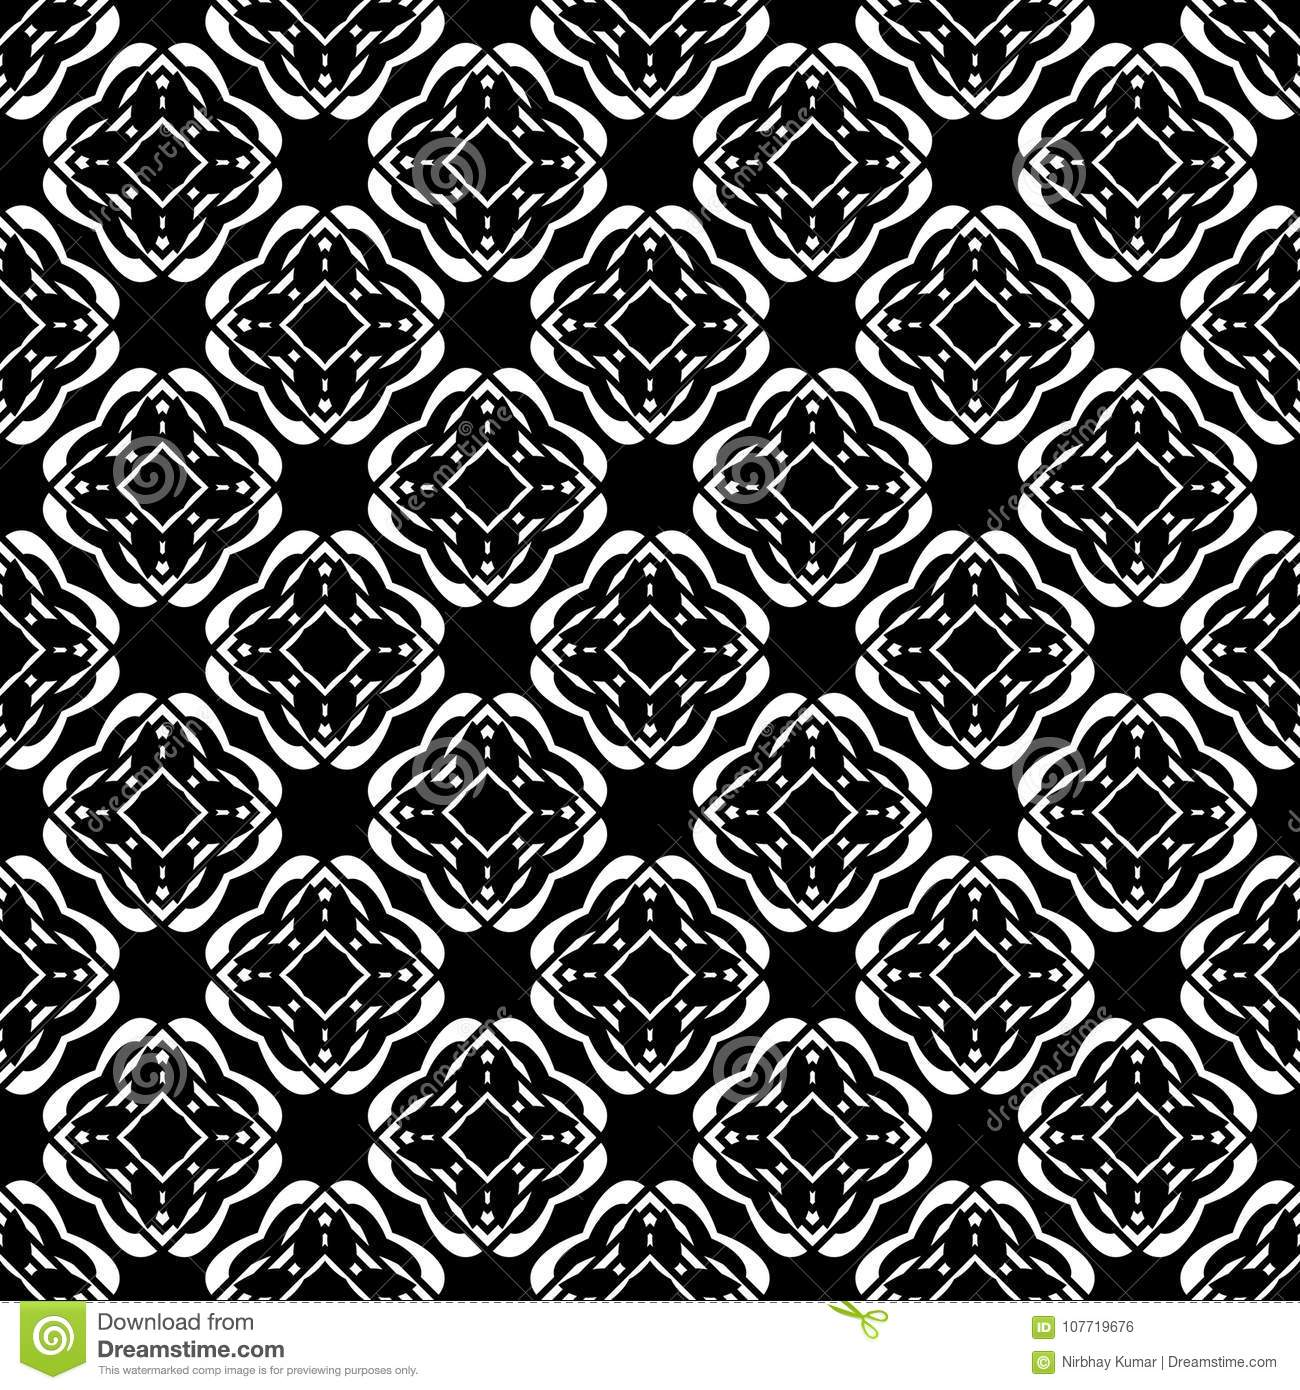 Simple Wallpaper Home Screen Black And White - pattern-website-background-wallpaper-screen-sever-book-cover-printing-laser-cutting-designs-vector-black-white-107719676  Pic_757279.jpg